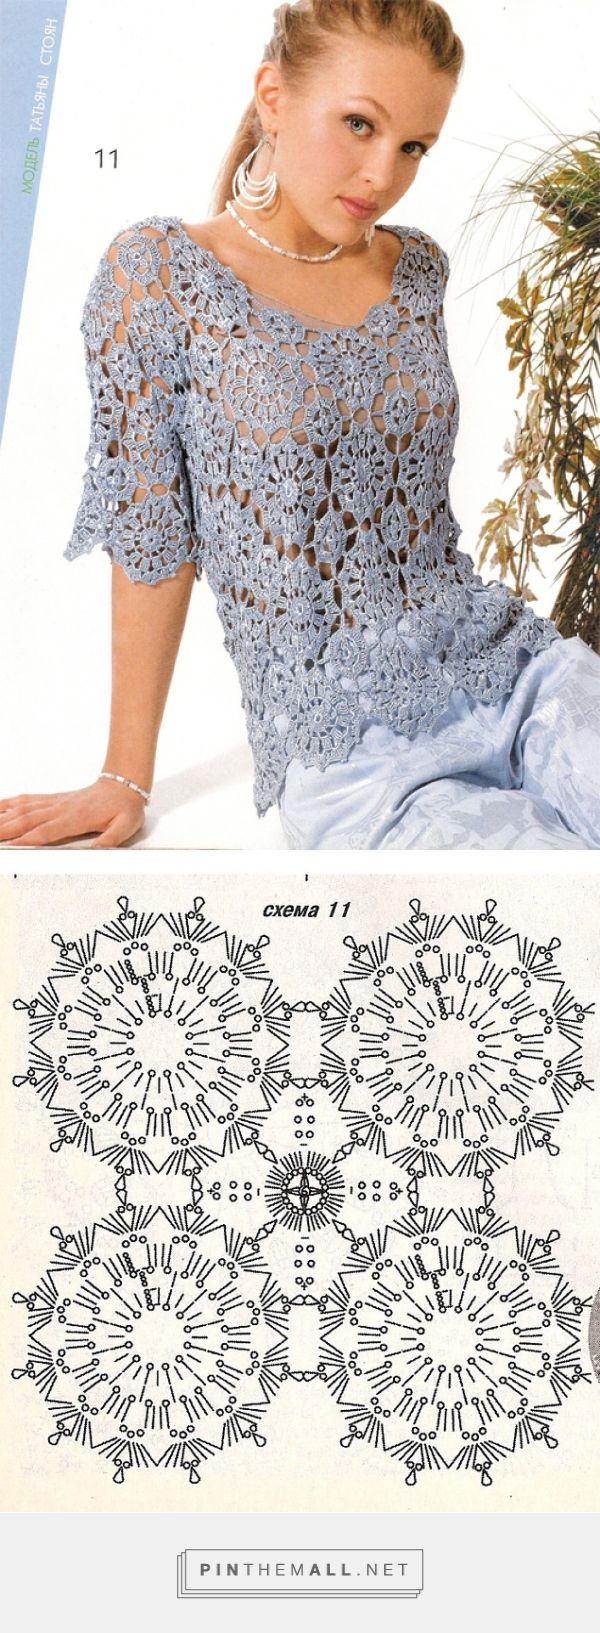 Crochet Blouse - Free Crochet Diagram - (crochetemoda.blogspot ...